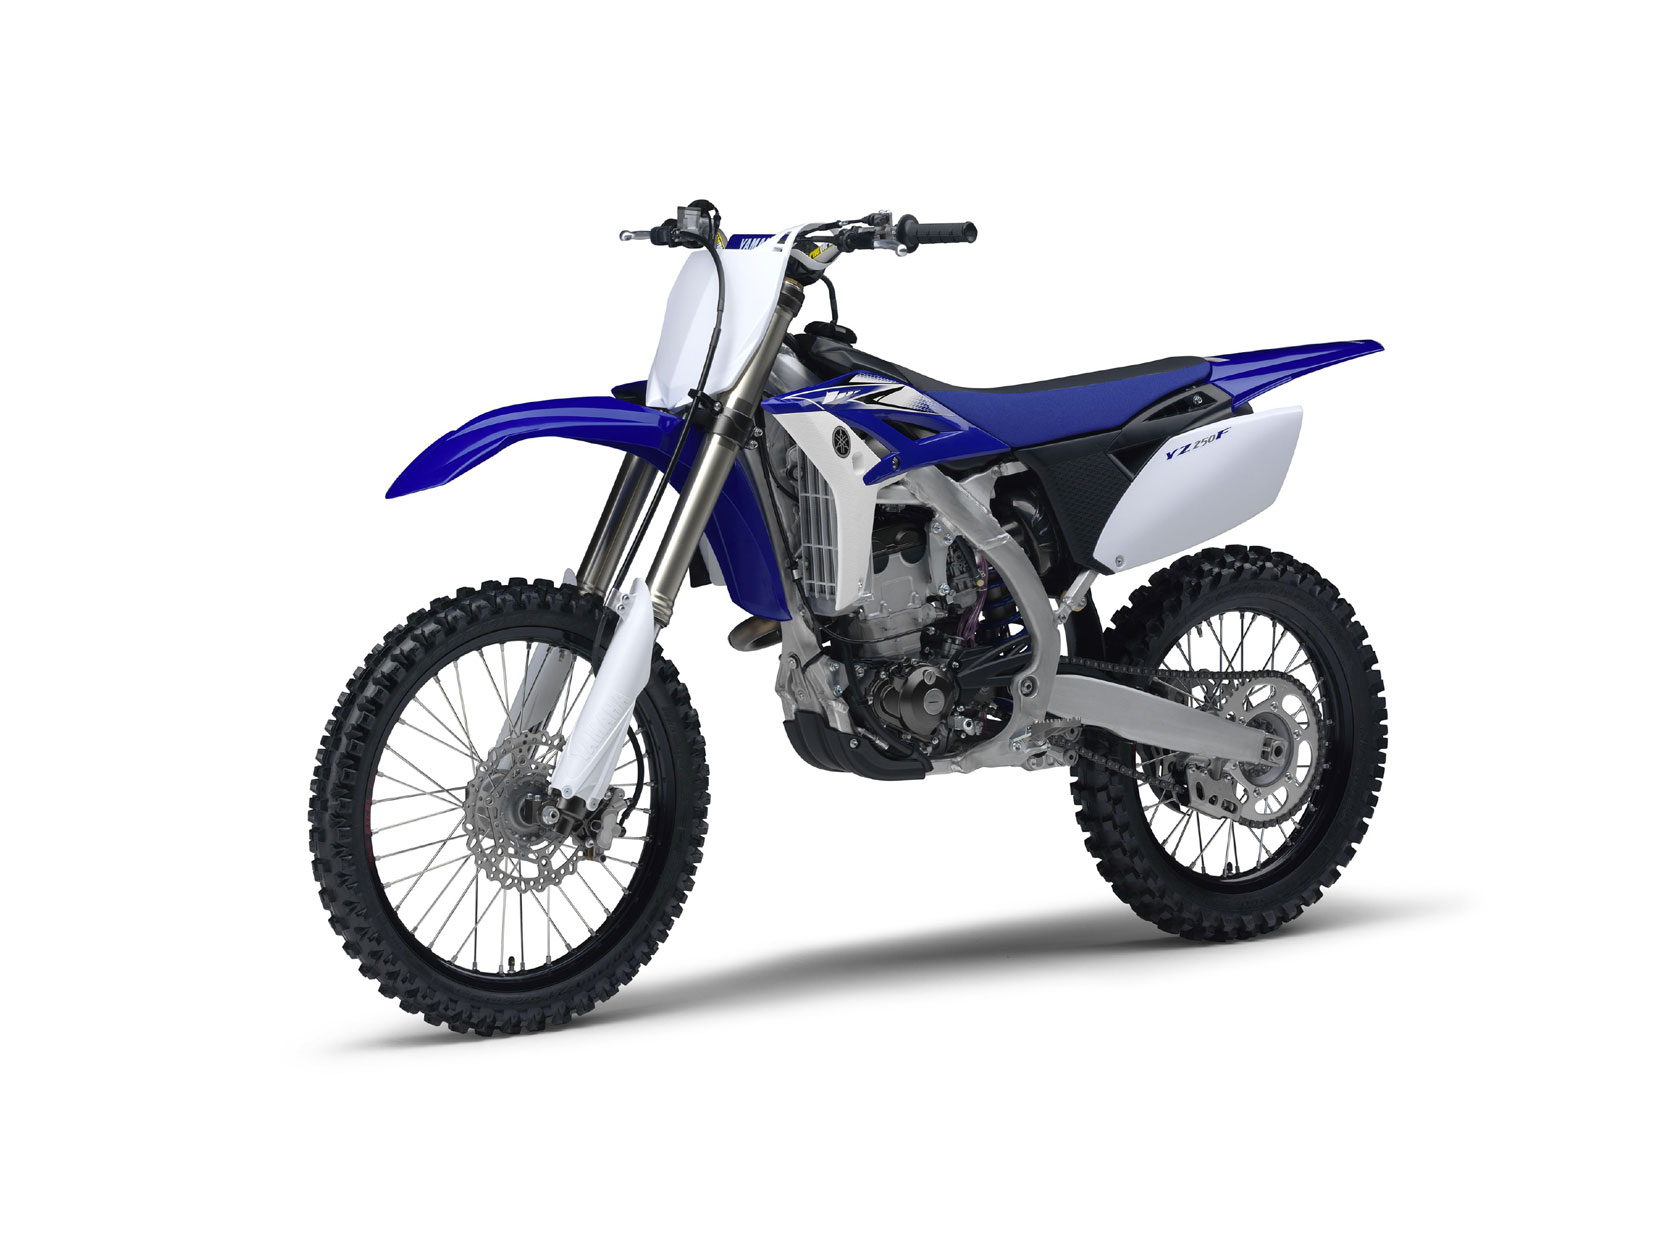 Stupendous Yamaha Yz250F Specs 2010 2011 Autoevolution Caraccident5 Cool Chair Designs And Ideas Caraccident5Info